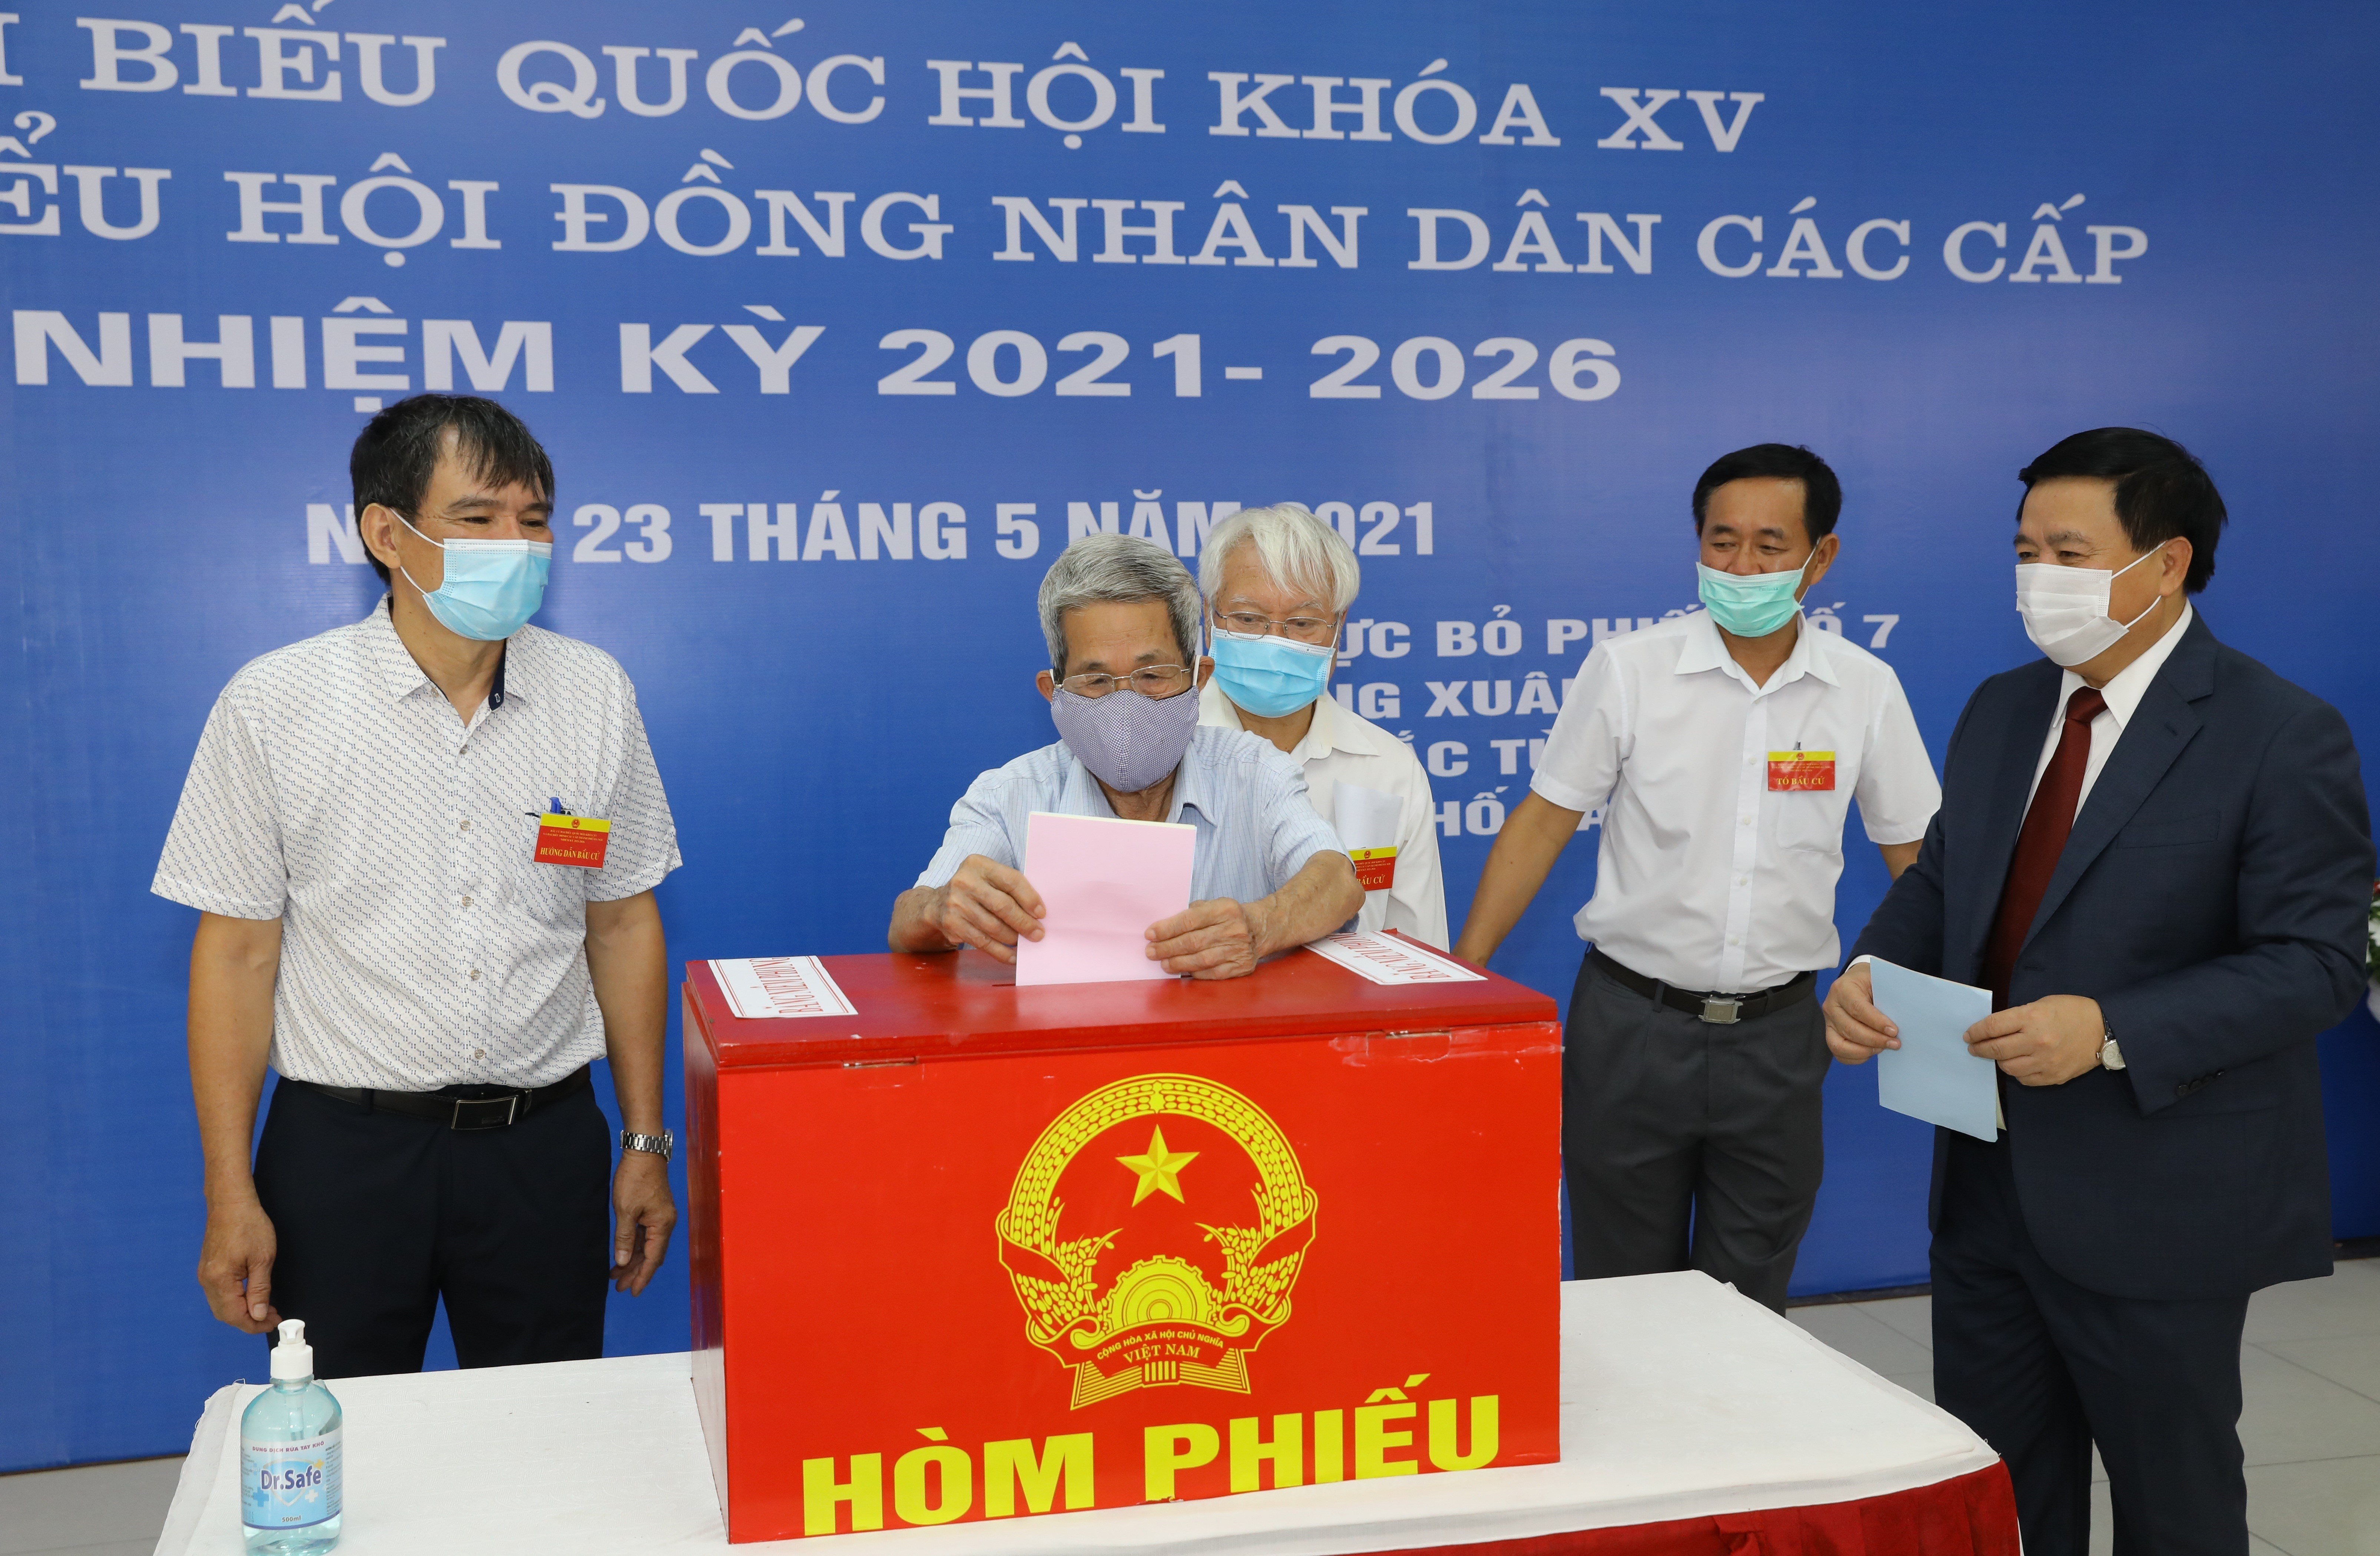 Voters nationwide cast ballots hinh anh 10